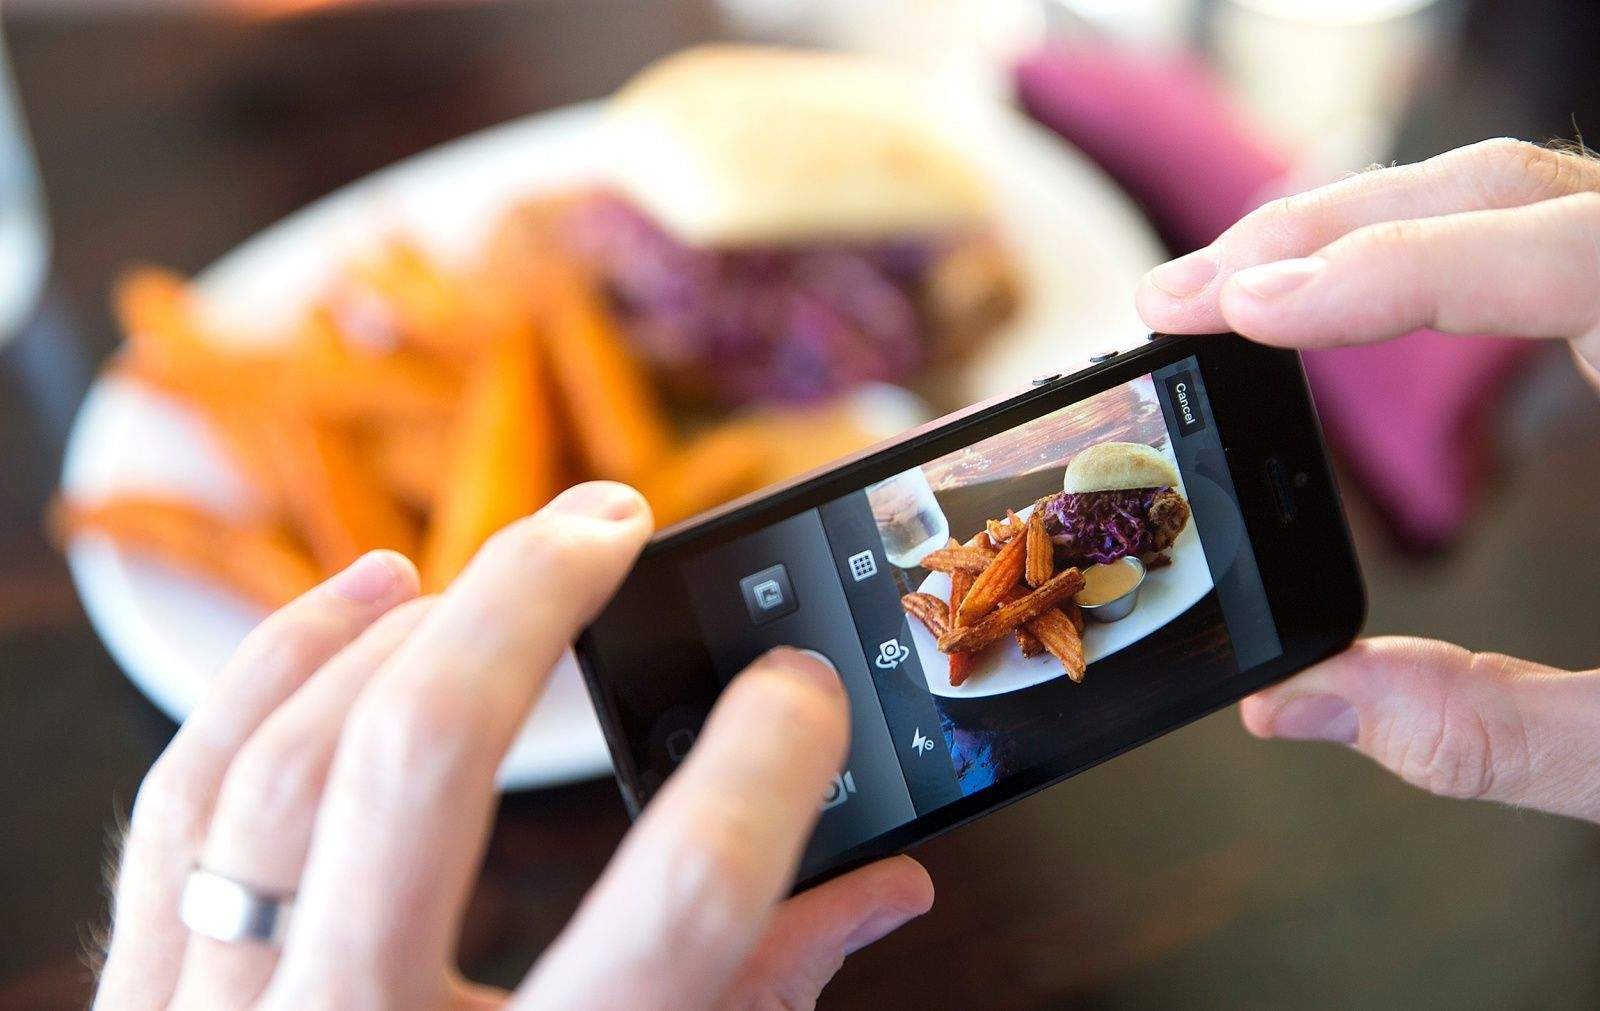 Food photography fad gets restaurants eyeing instagram for Where to buy photography